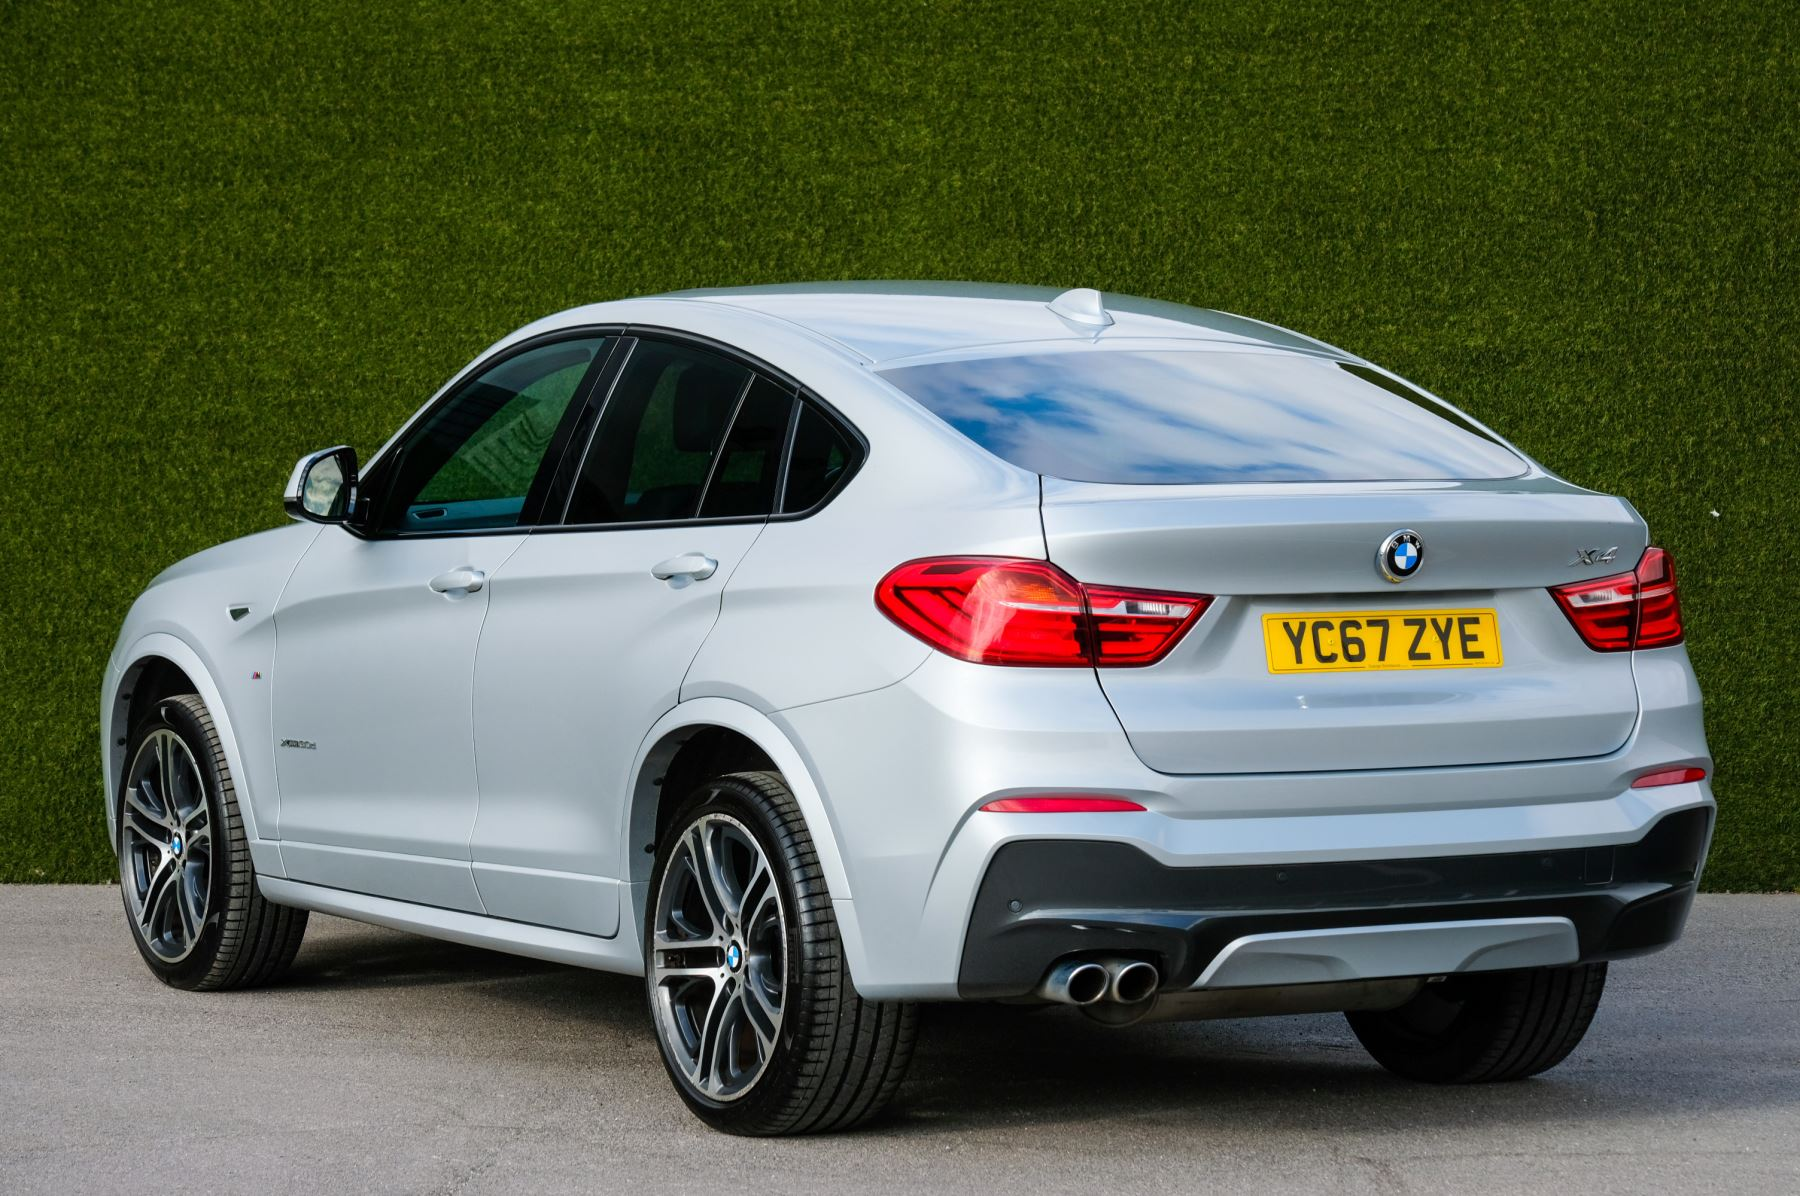 BMW X4 xDrive30d M Sport 5dr Step - M Sport Plus Package - Interior Comfort Package - Elec Glass Sunroof -  image 5